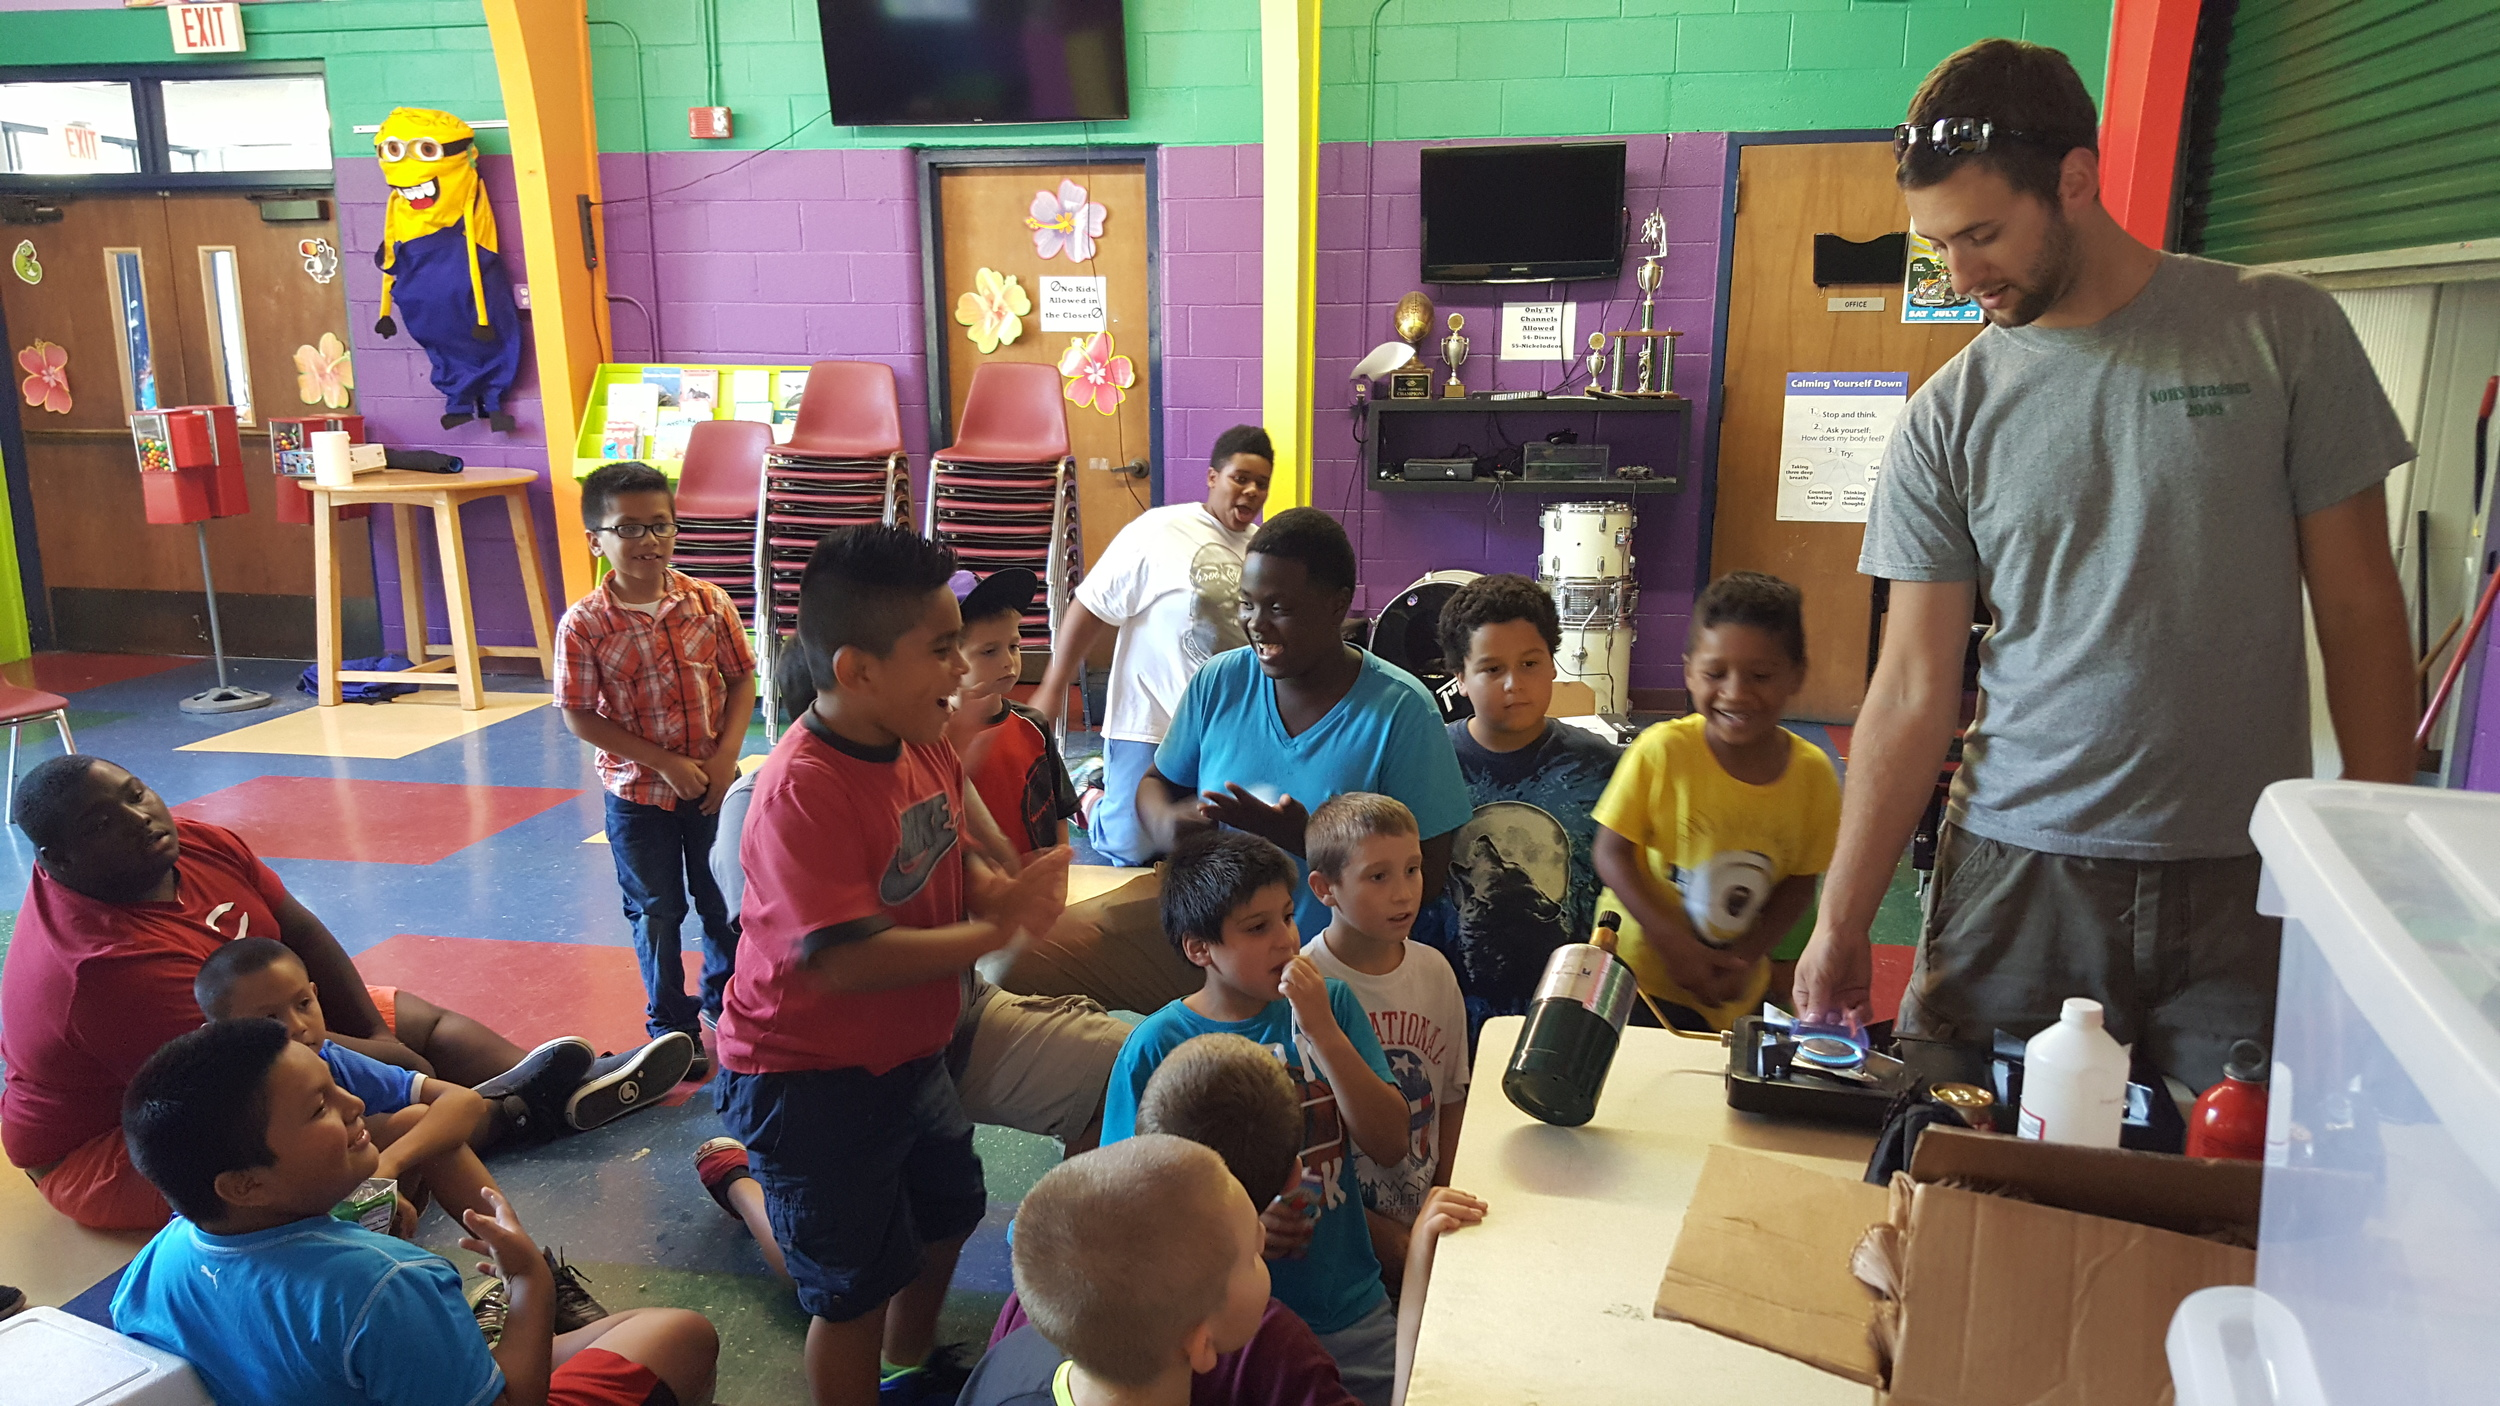 The boys at Powers seem pretty excited about this camp stove!